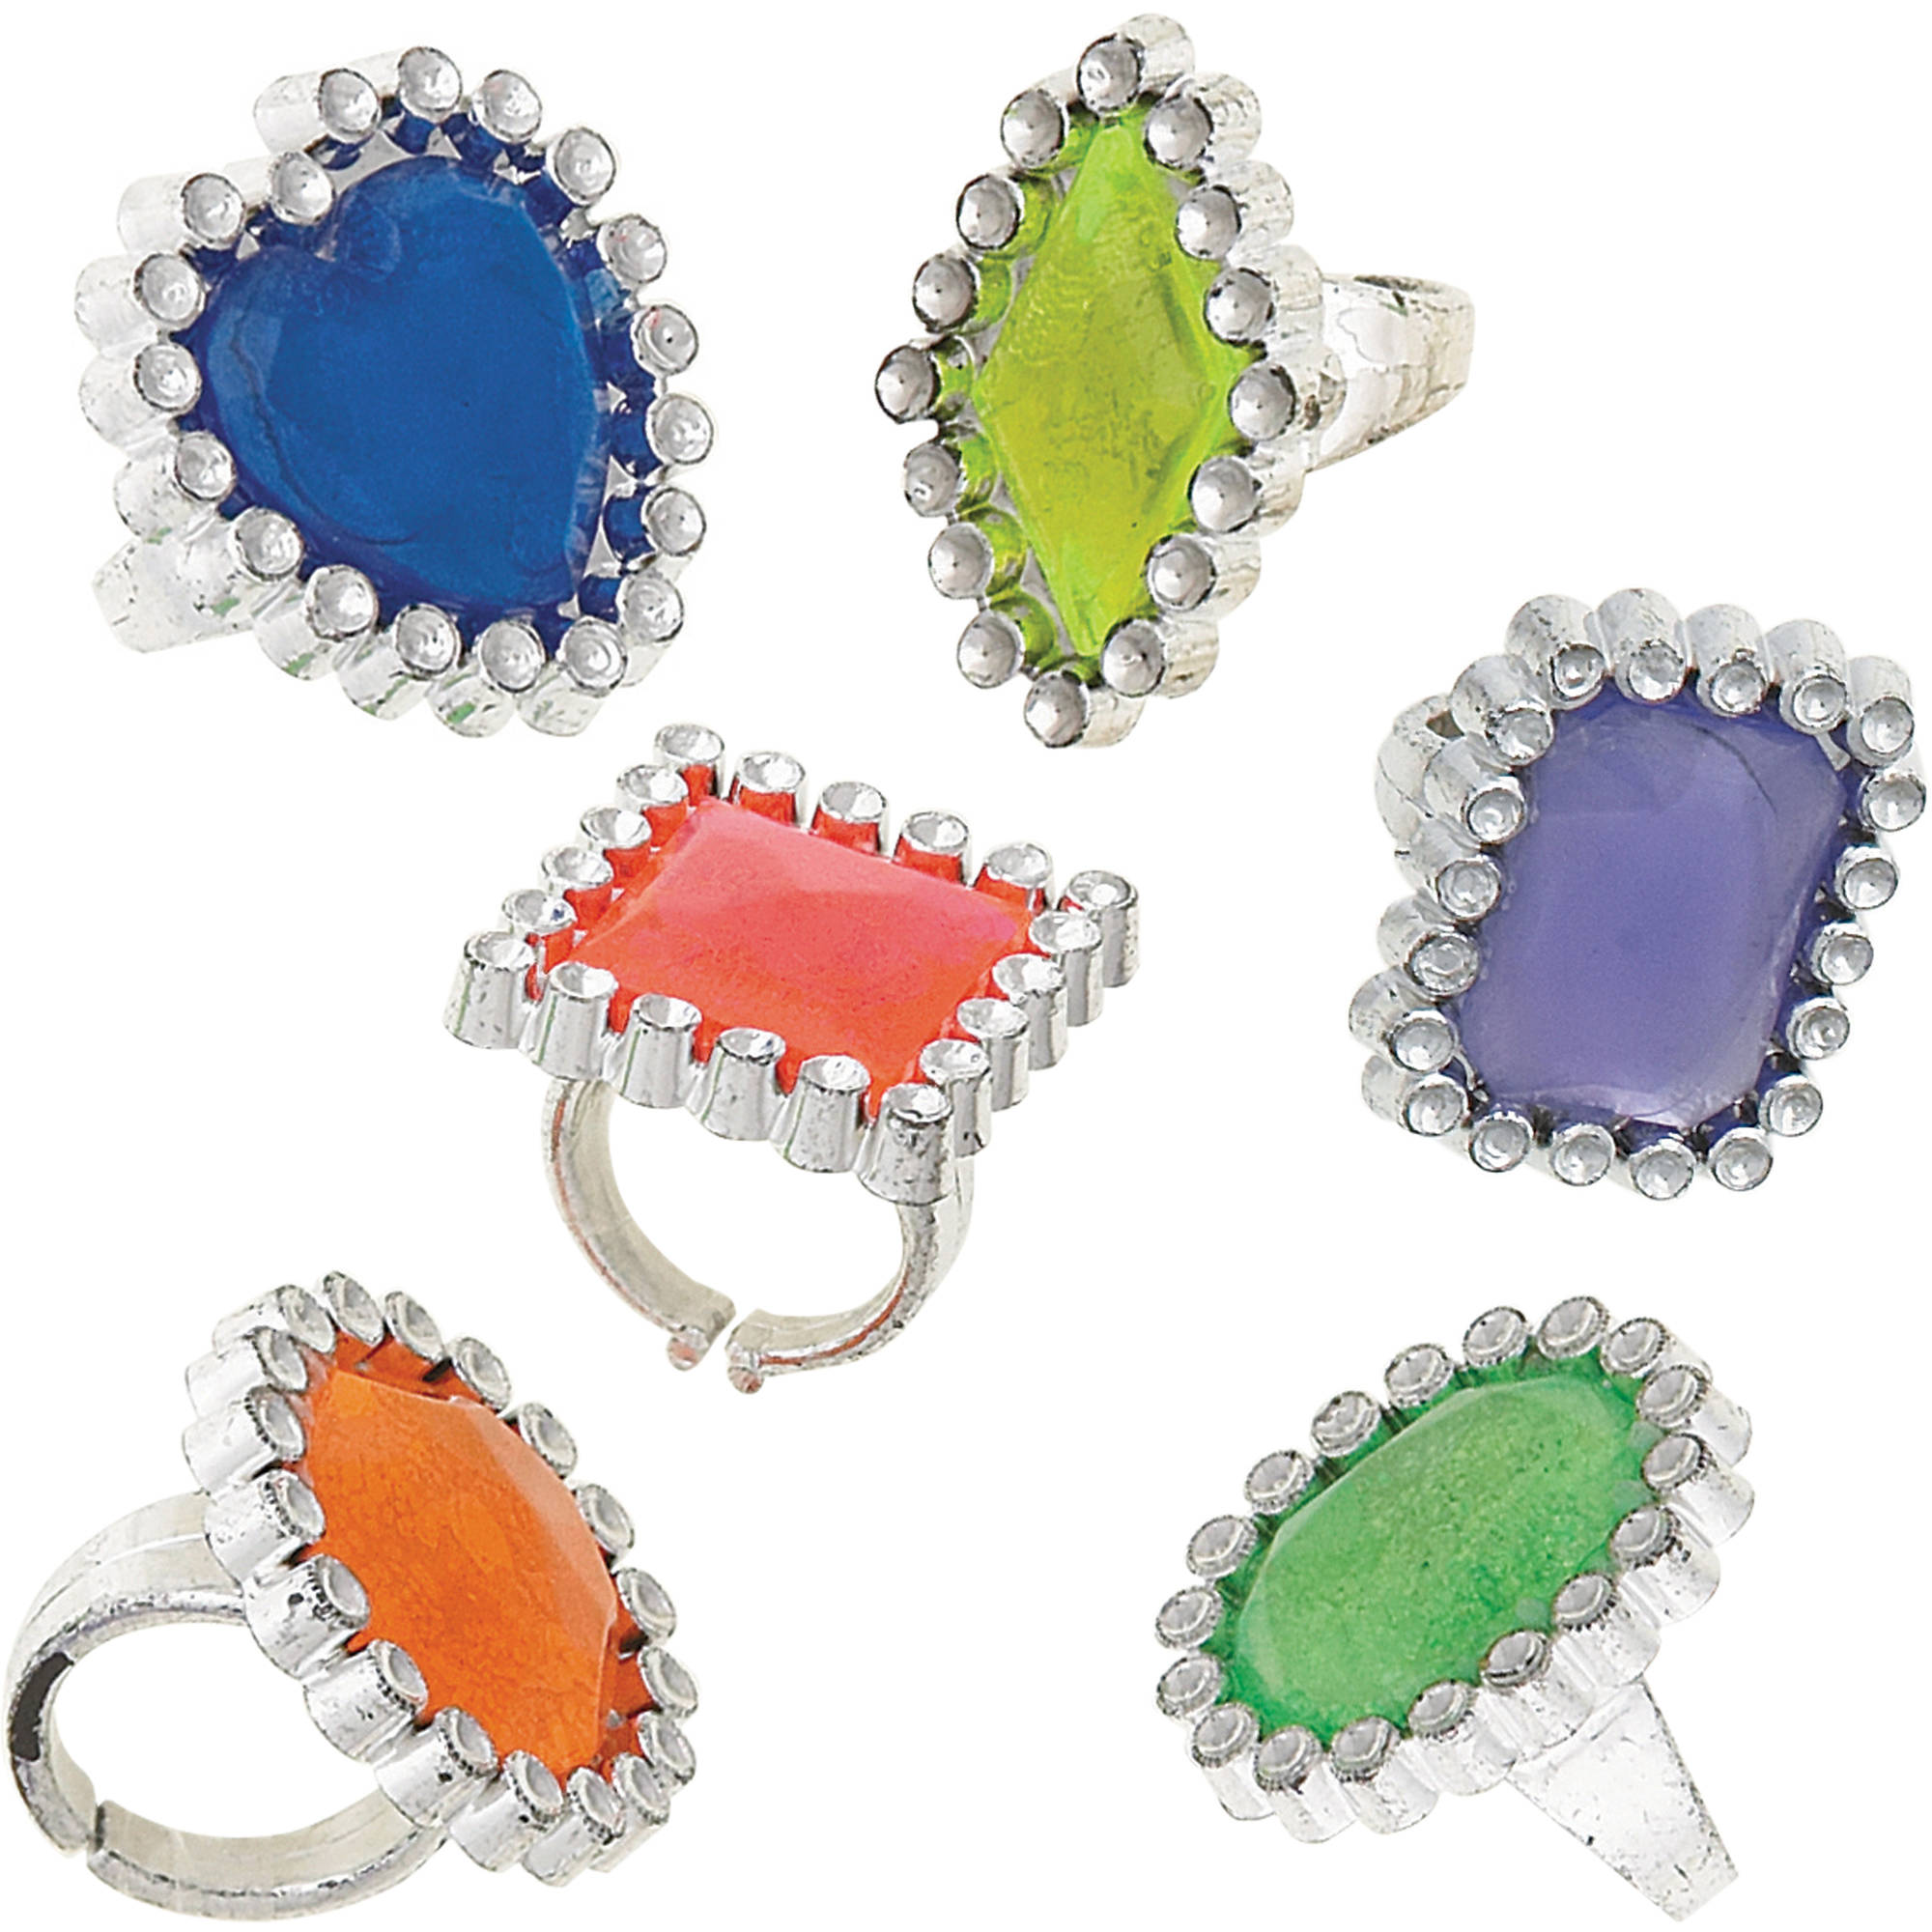 Plastic Gem Ring Party Favors, Assorted 12ct